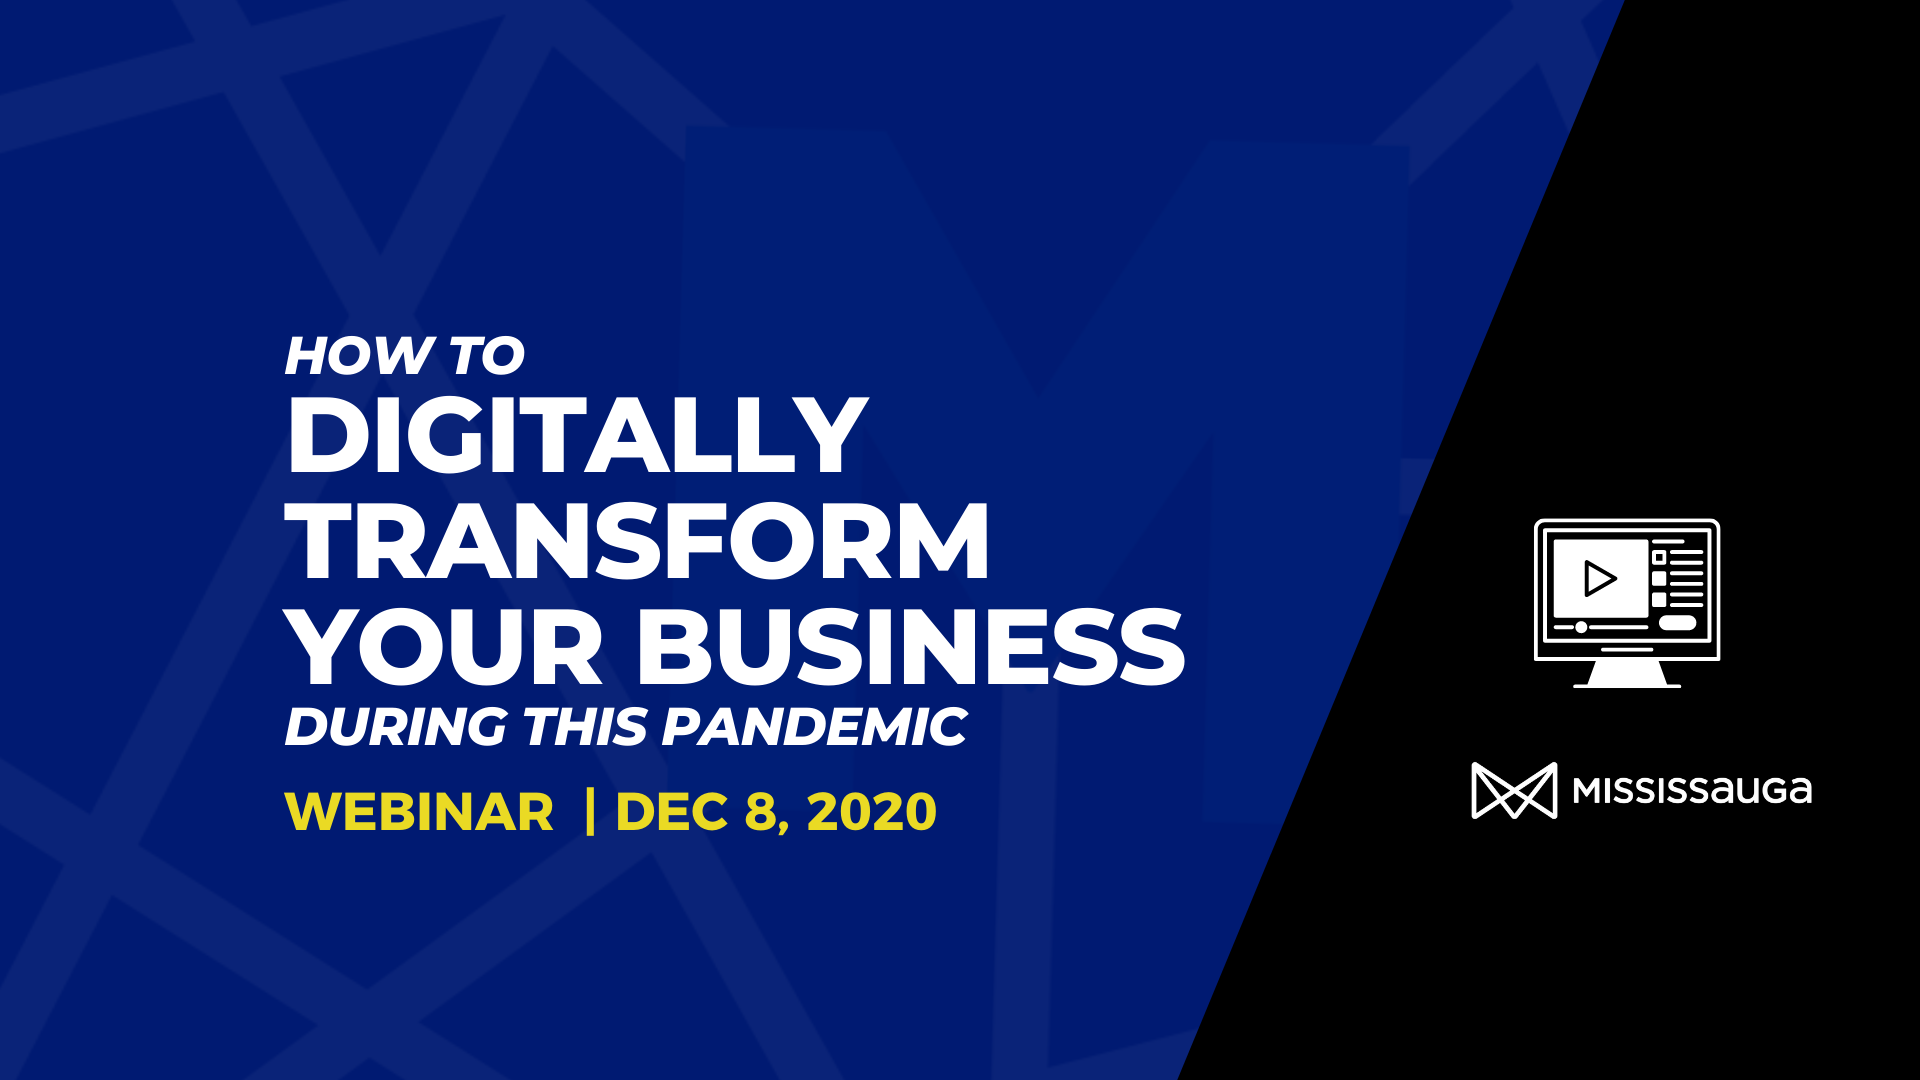 How to Digitally Transform your Business During this Pandemic – Webinar, Dec 8